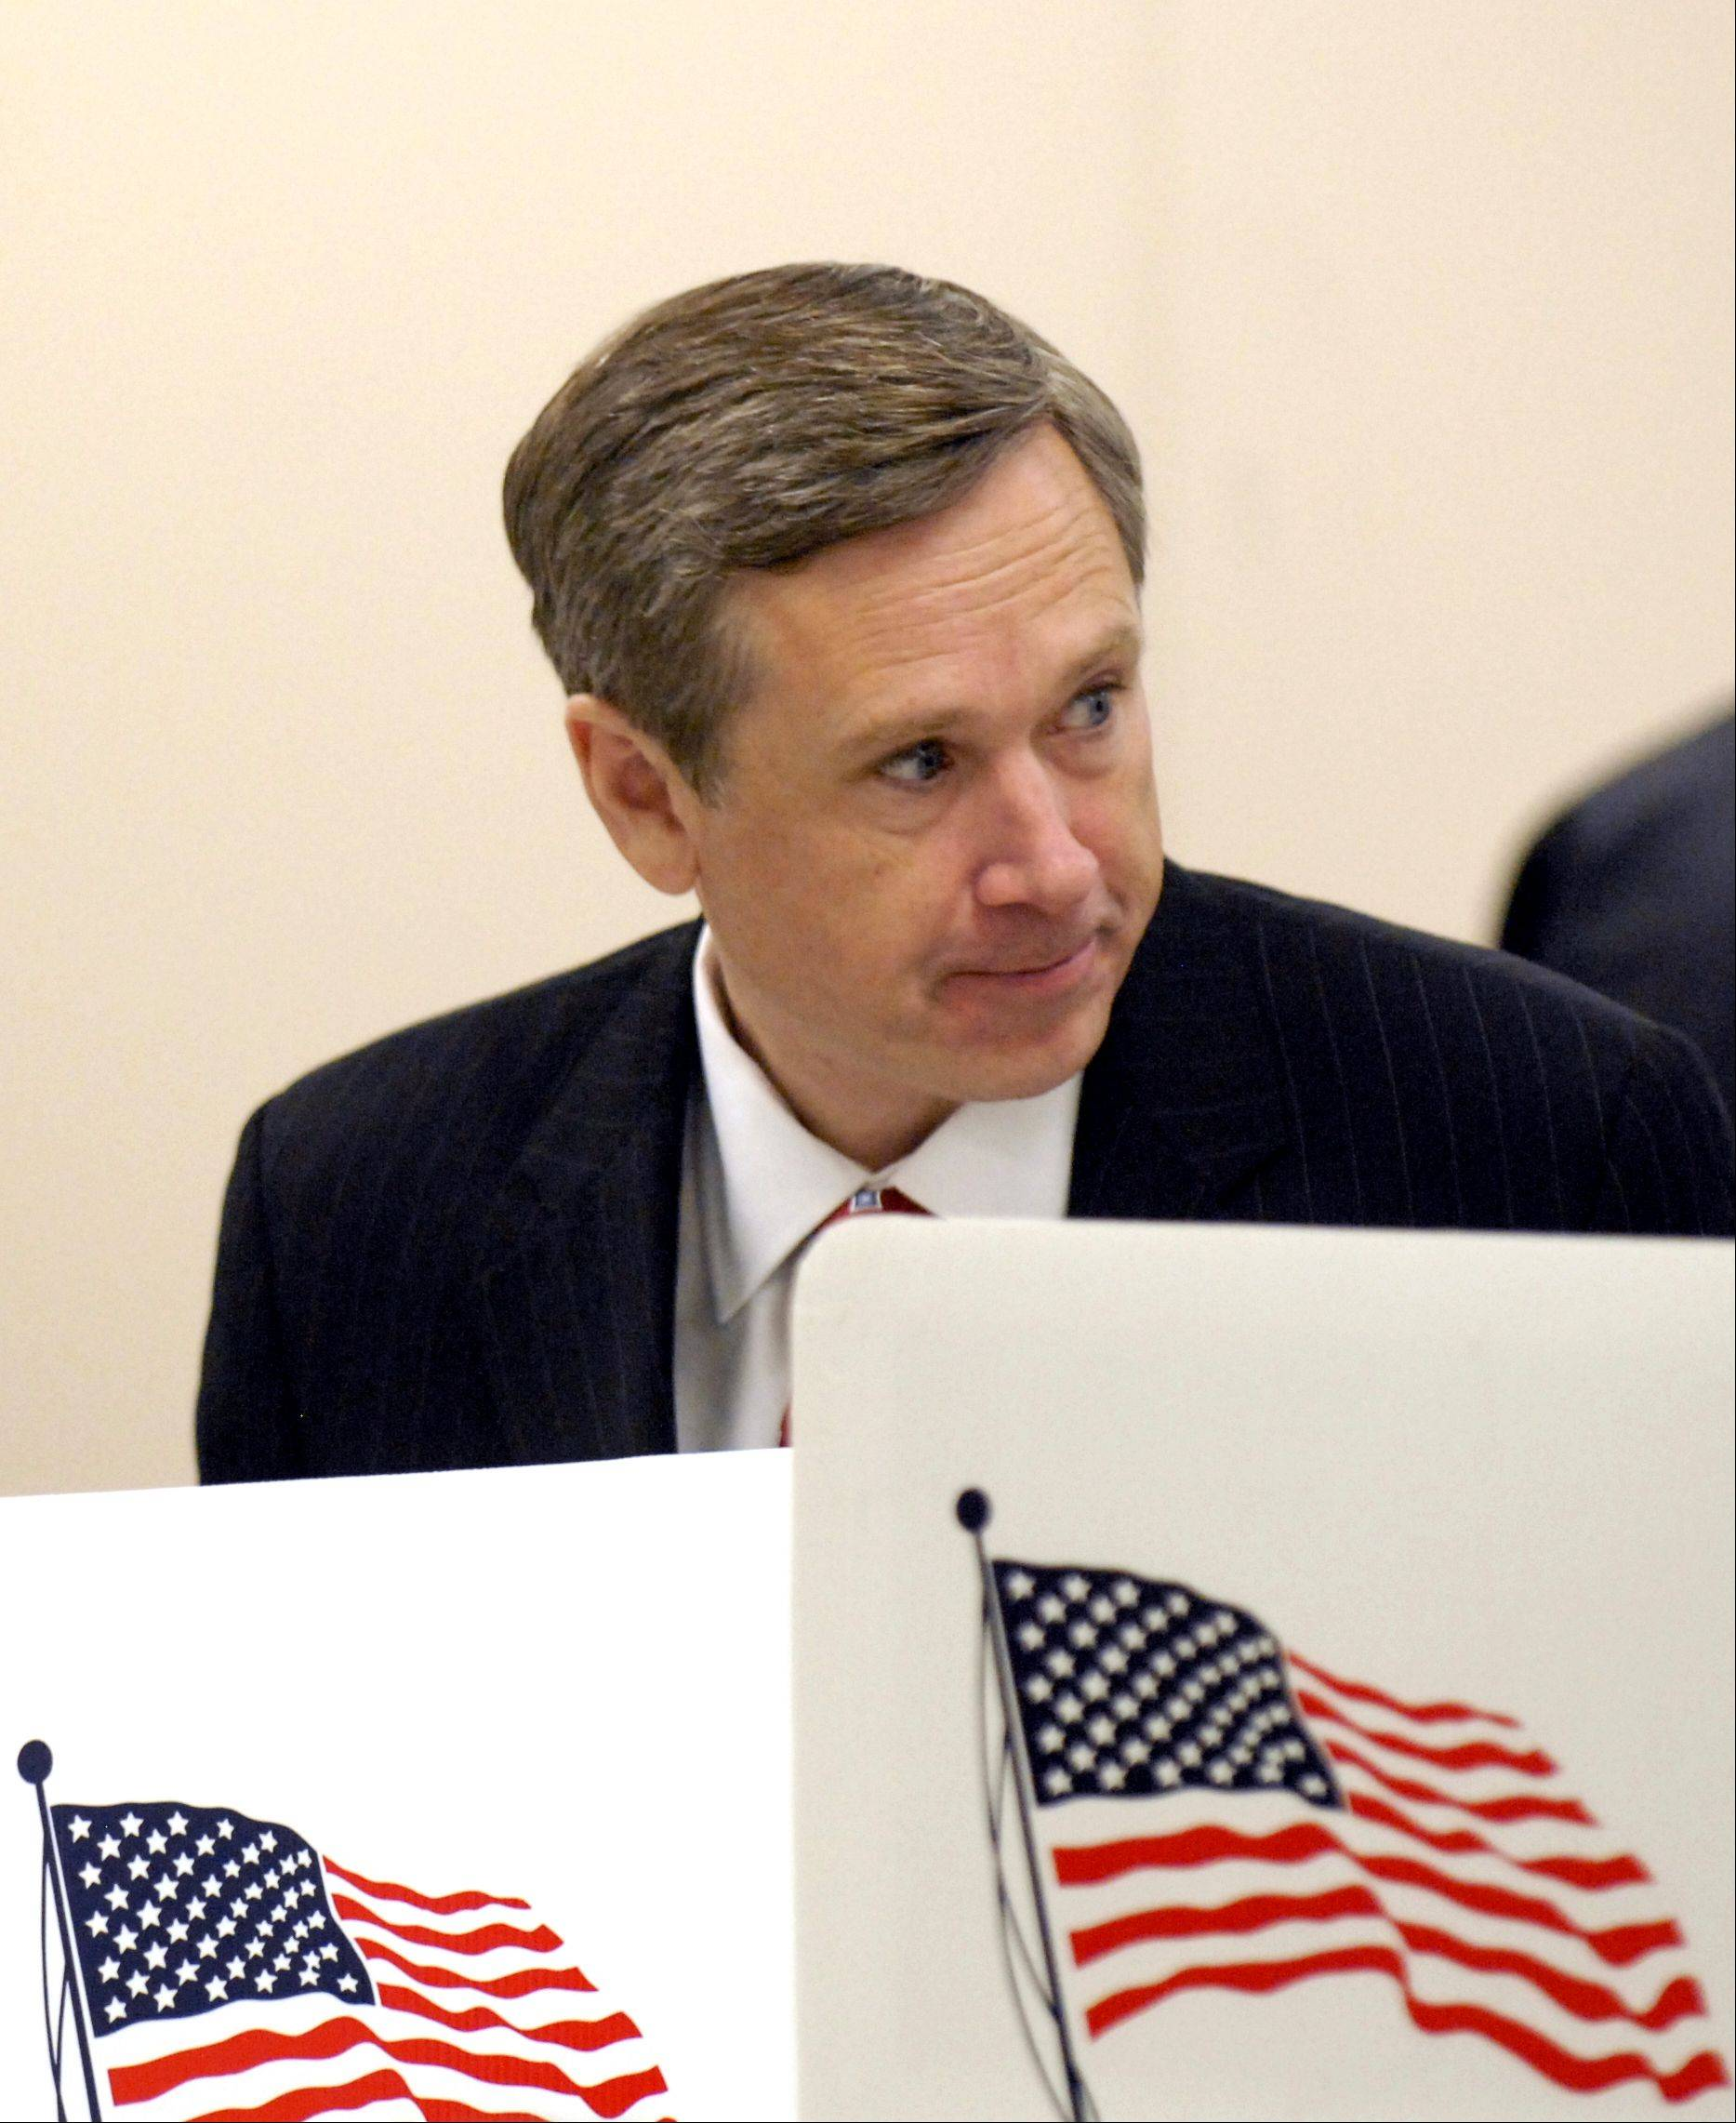 US Rep. Mark Kirk, R-Ill. votes at Highwood Community Center in Highwood, Ill., Tuesday, Nov. 2, 2010.